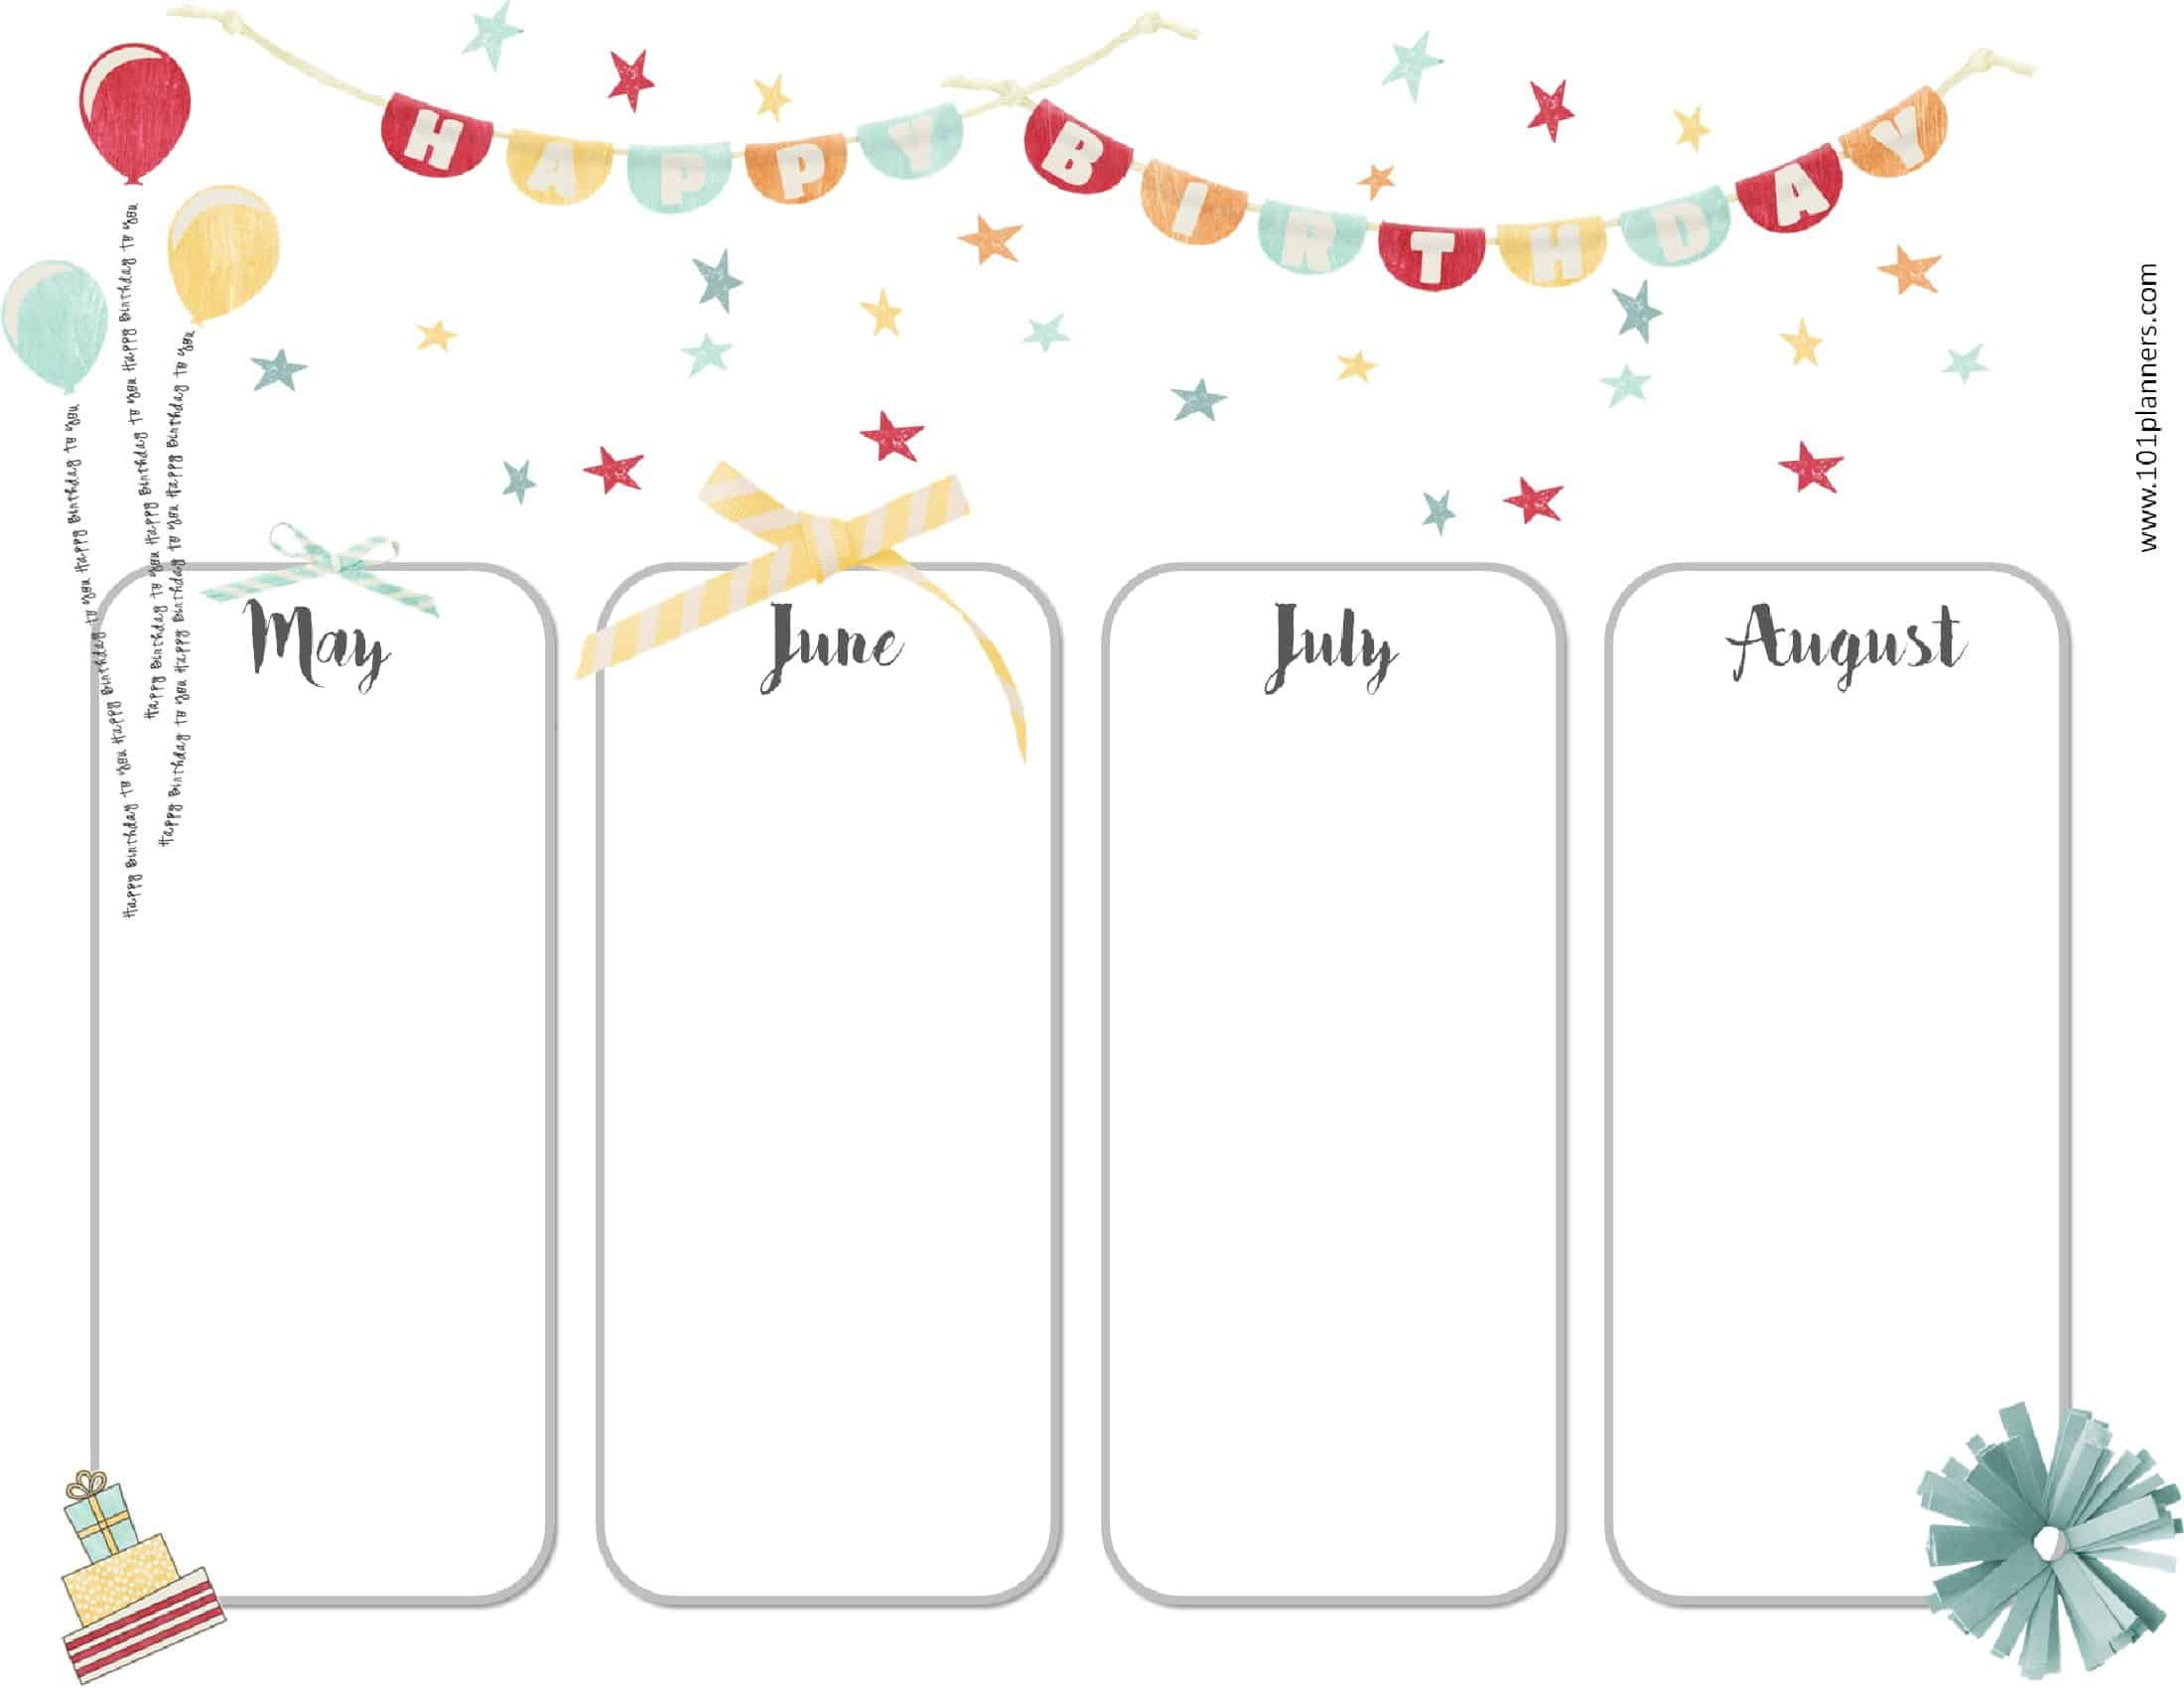 Free Birthday Calendar | Printable & Customizable | Many Designs! inside Edited Birthday Calendar Template